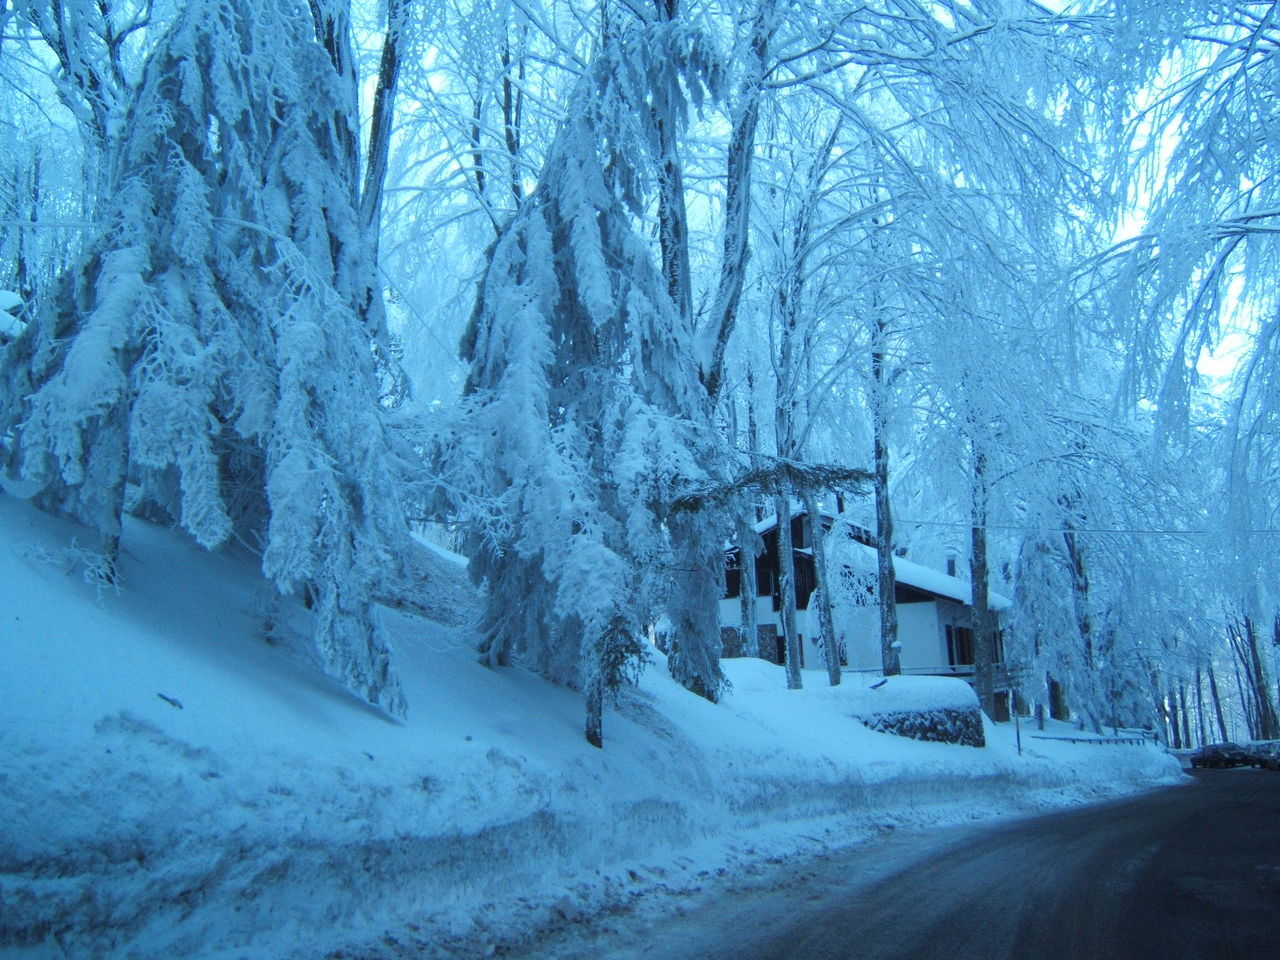 winter, snow, cold temperature, tree, nature, white color, transportation, road, bare tree, no people, tranquil scene, beauty in nature, tranquility, frozen, landscape, outdoors, scenics, day